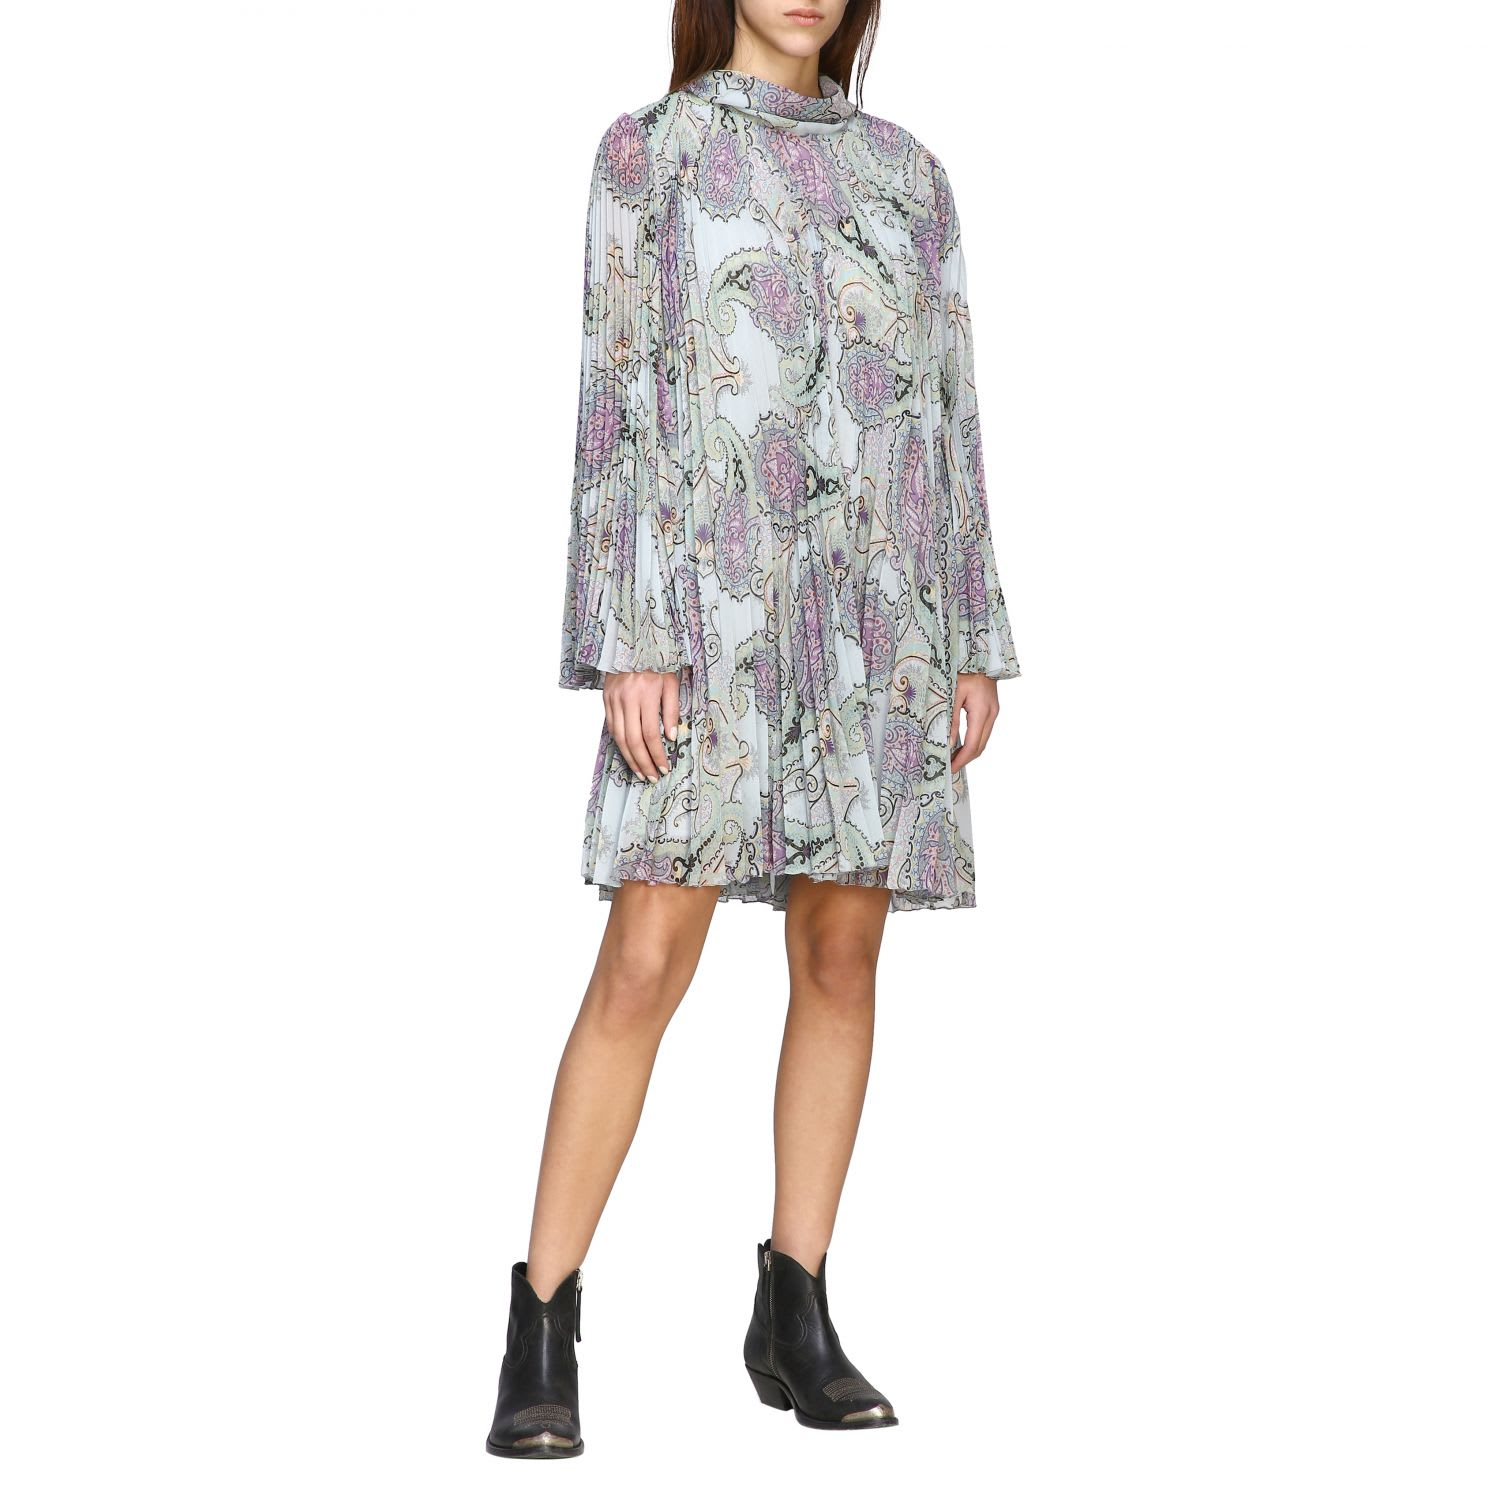 Buy Etro Dress Etro Dress In Pleated Fabric With Paisley Print online, shop Etro with free shipping